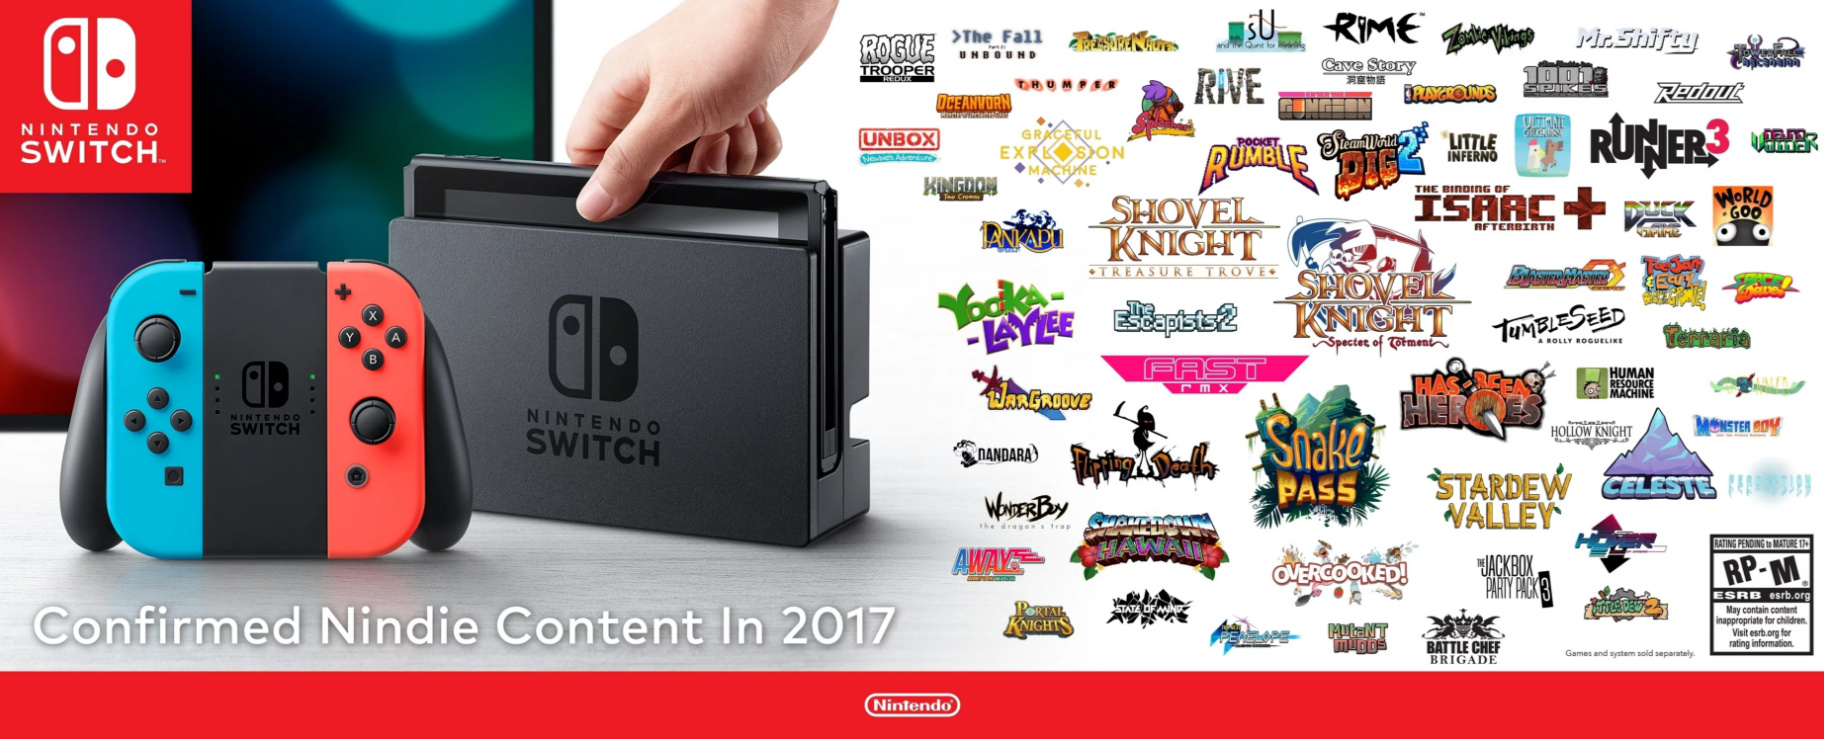 how to keep games but delete nintendo account